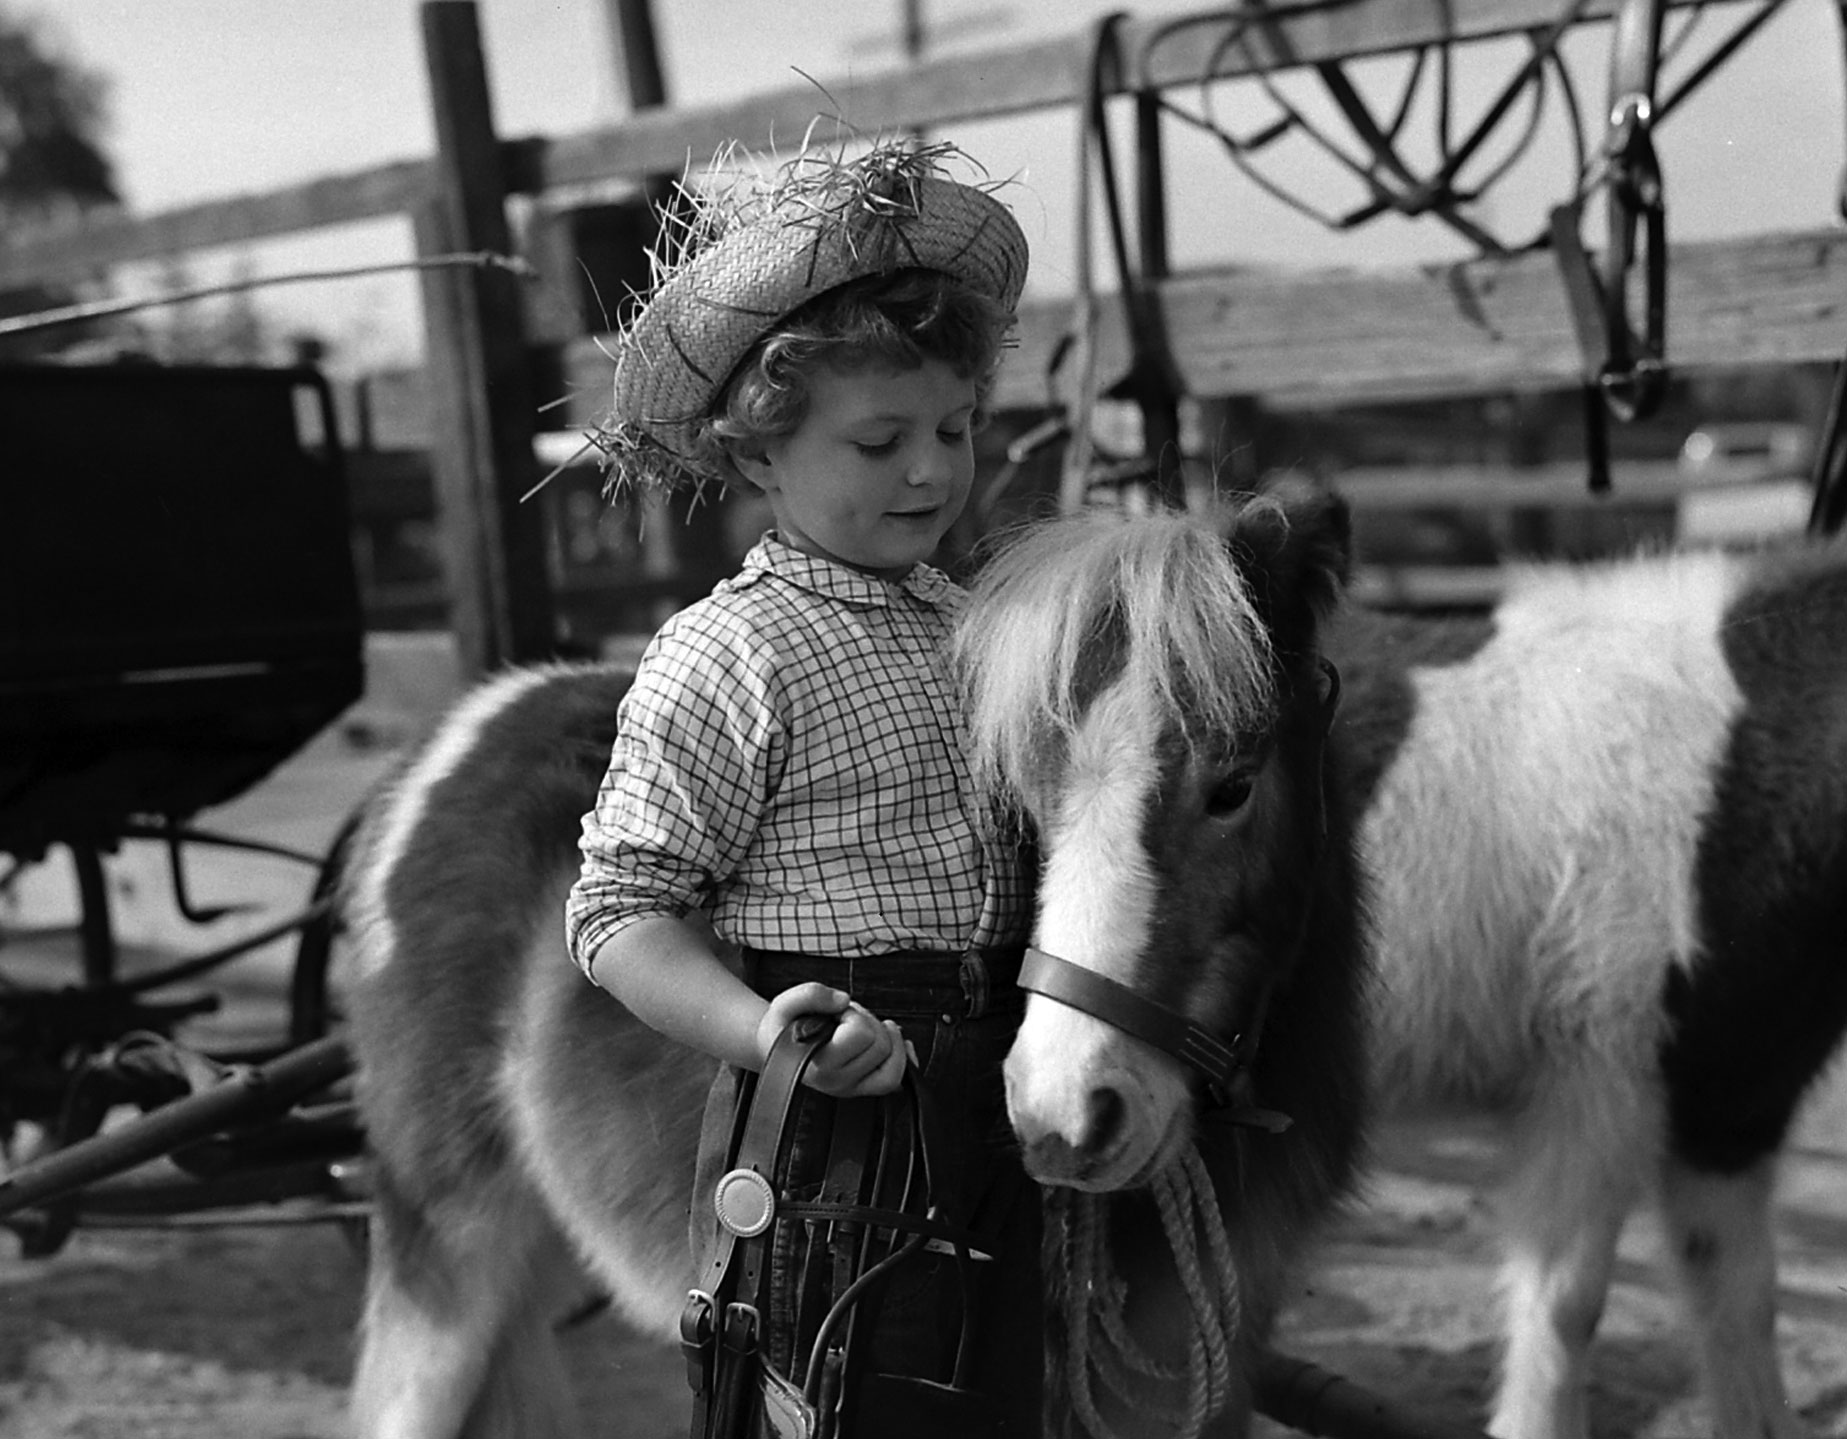 A young girl with Chauncey the miniature horse.